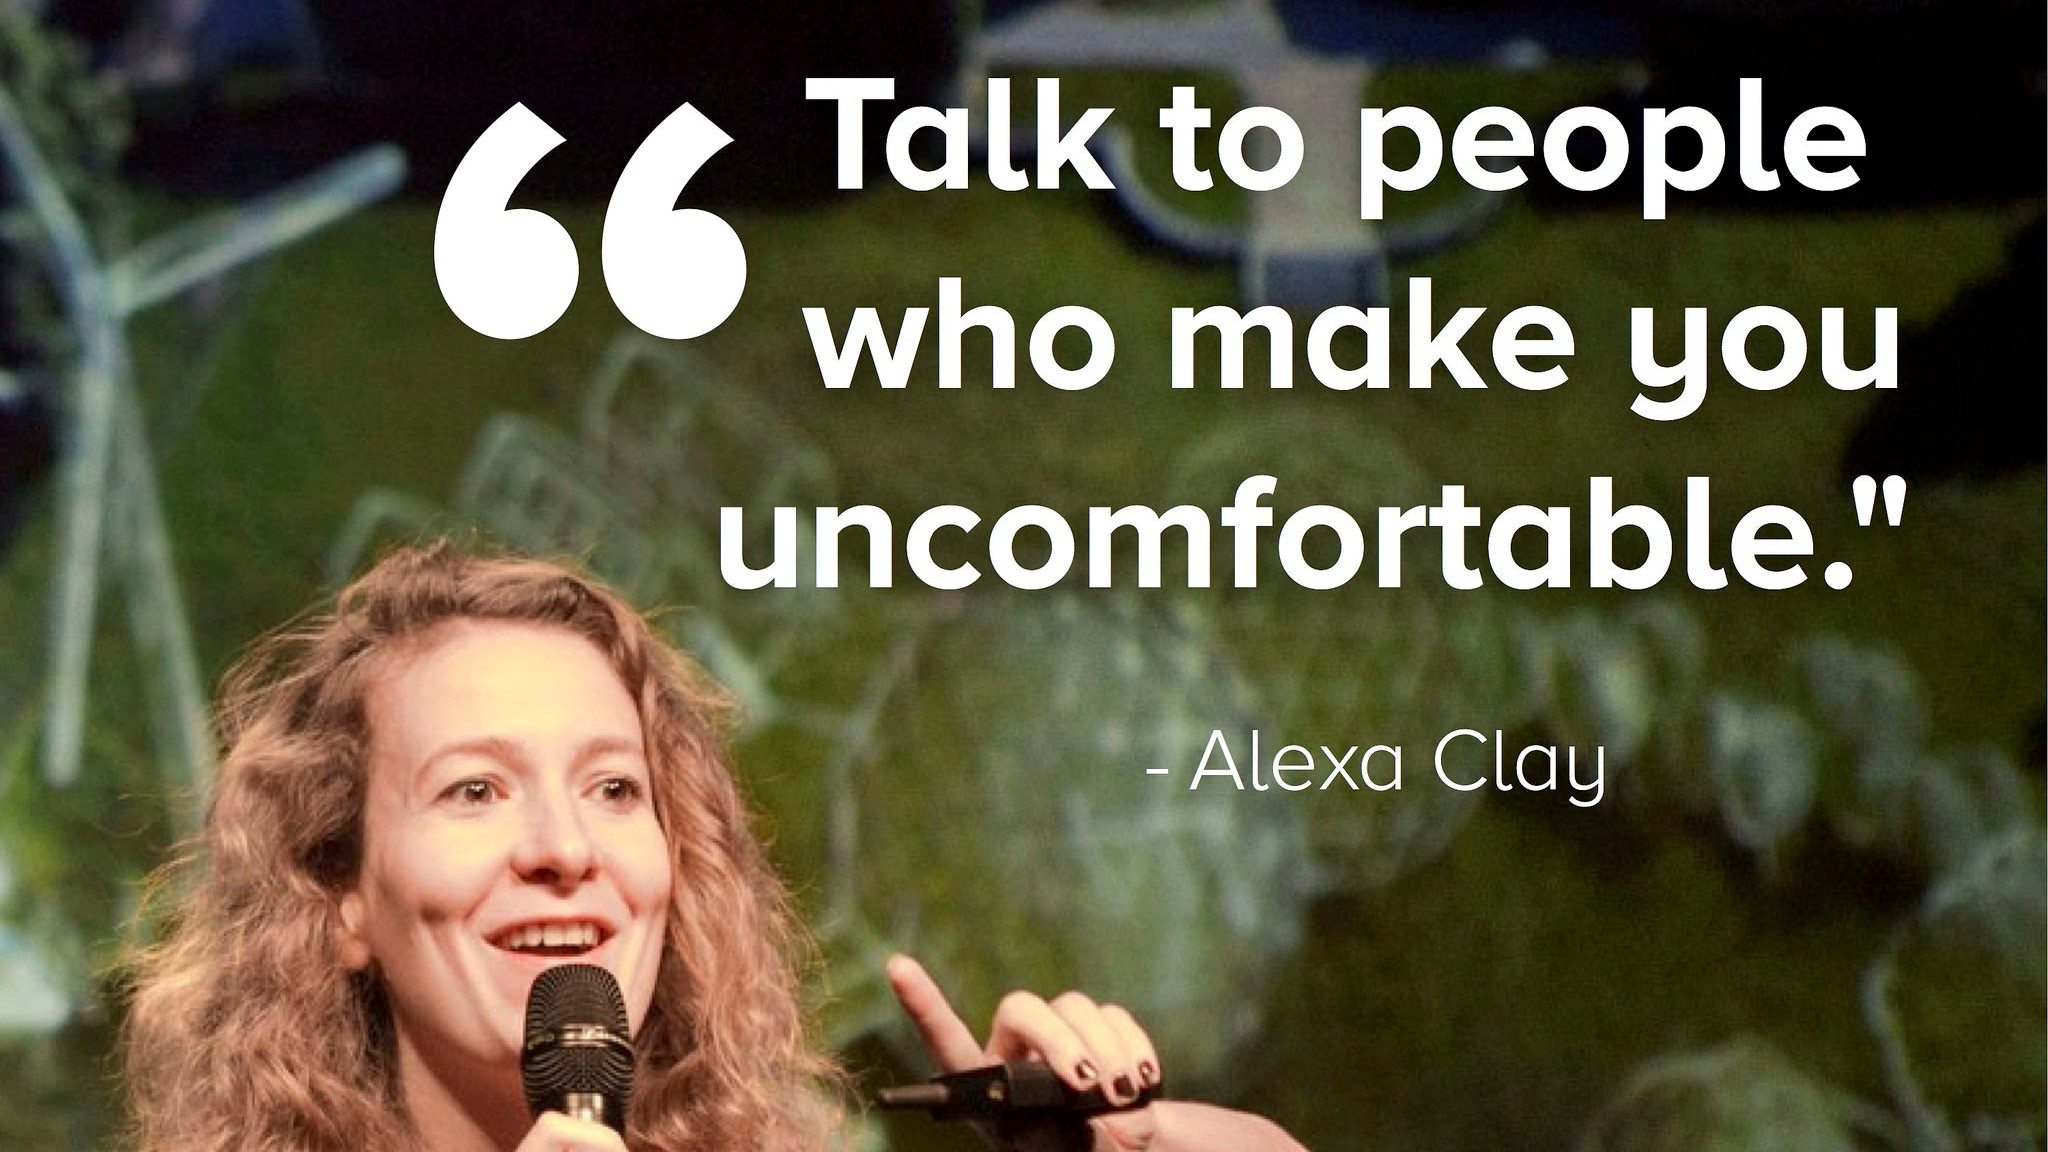 """Image: A PopTech speaker quote, """"Talk to people who make you uncomfortable."""""""